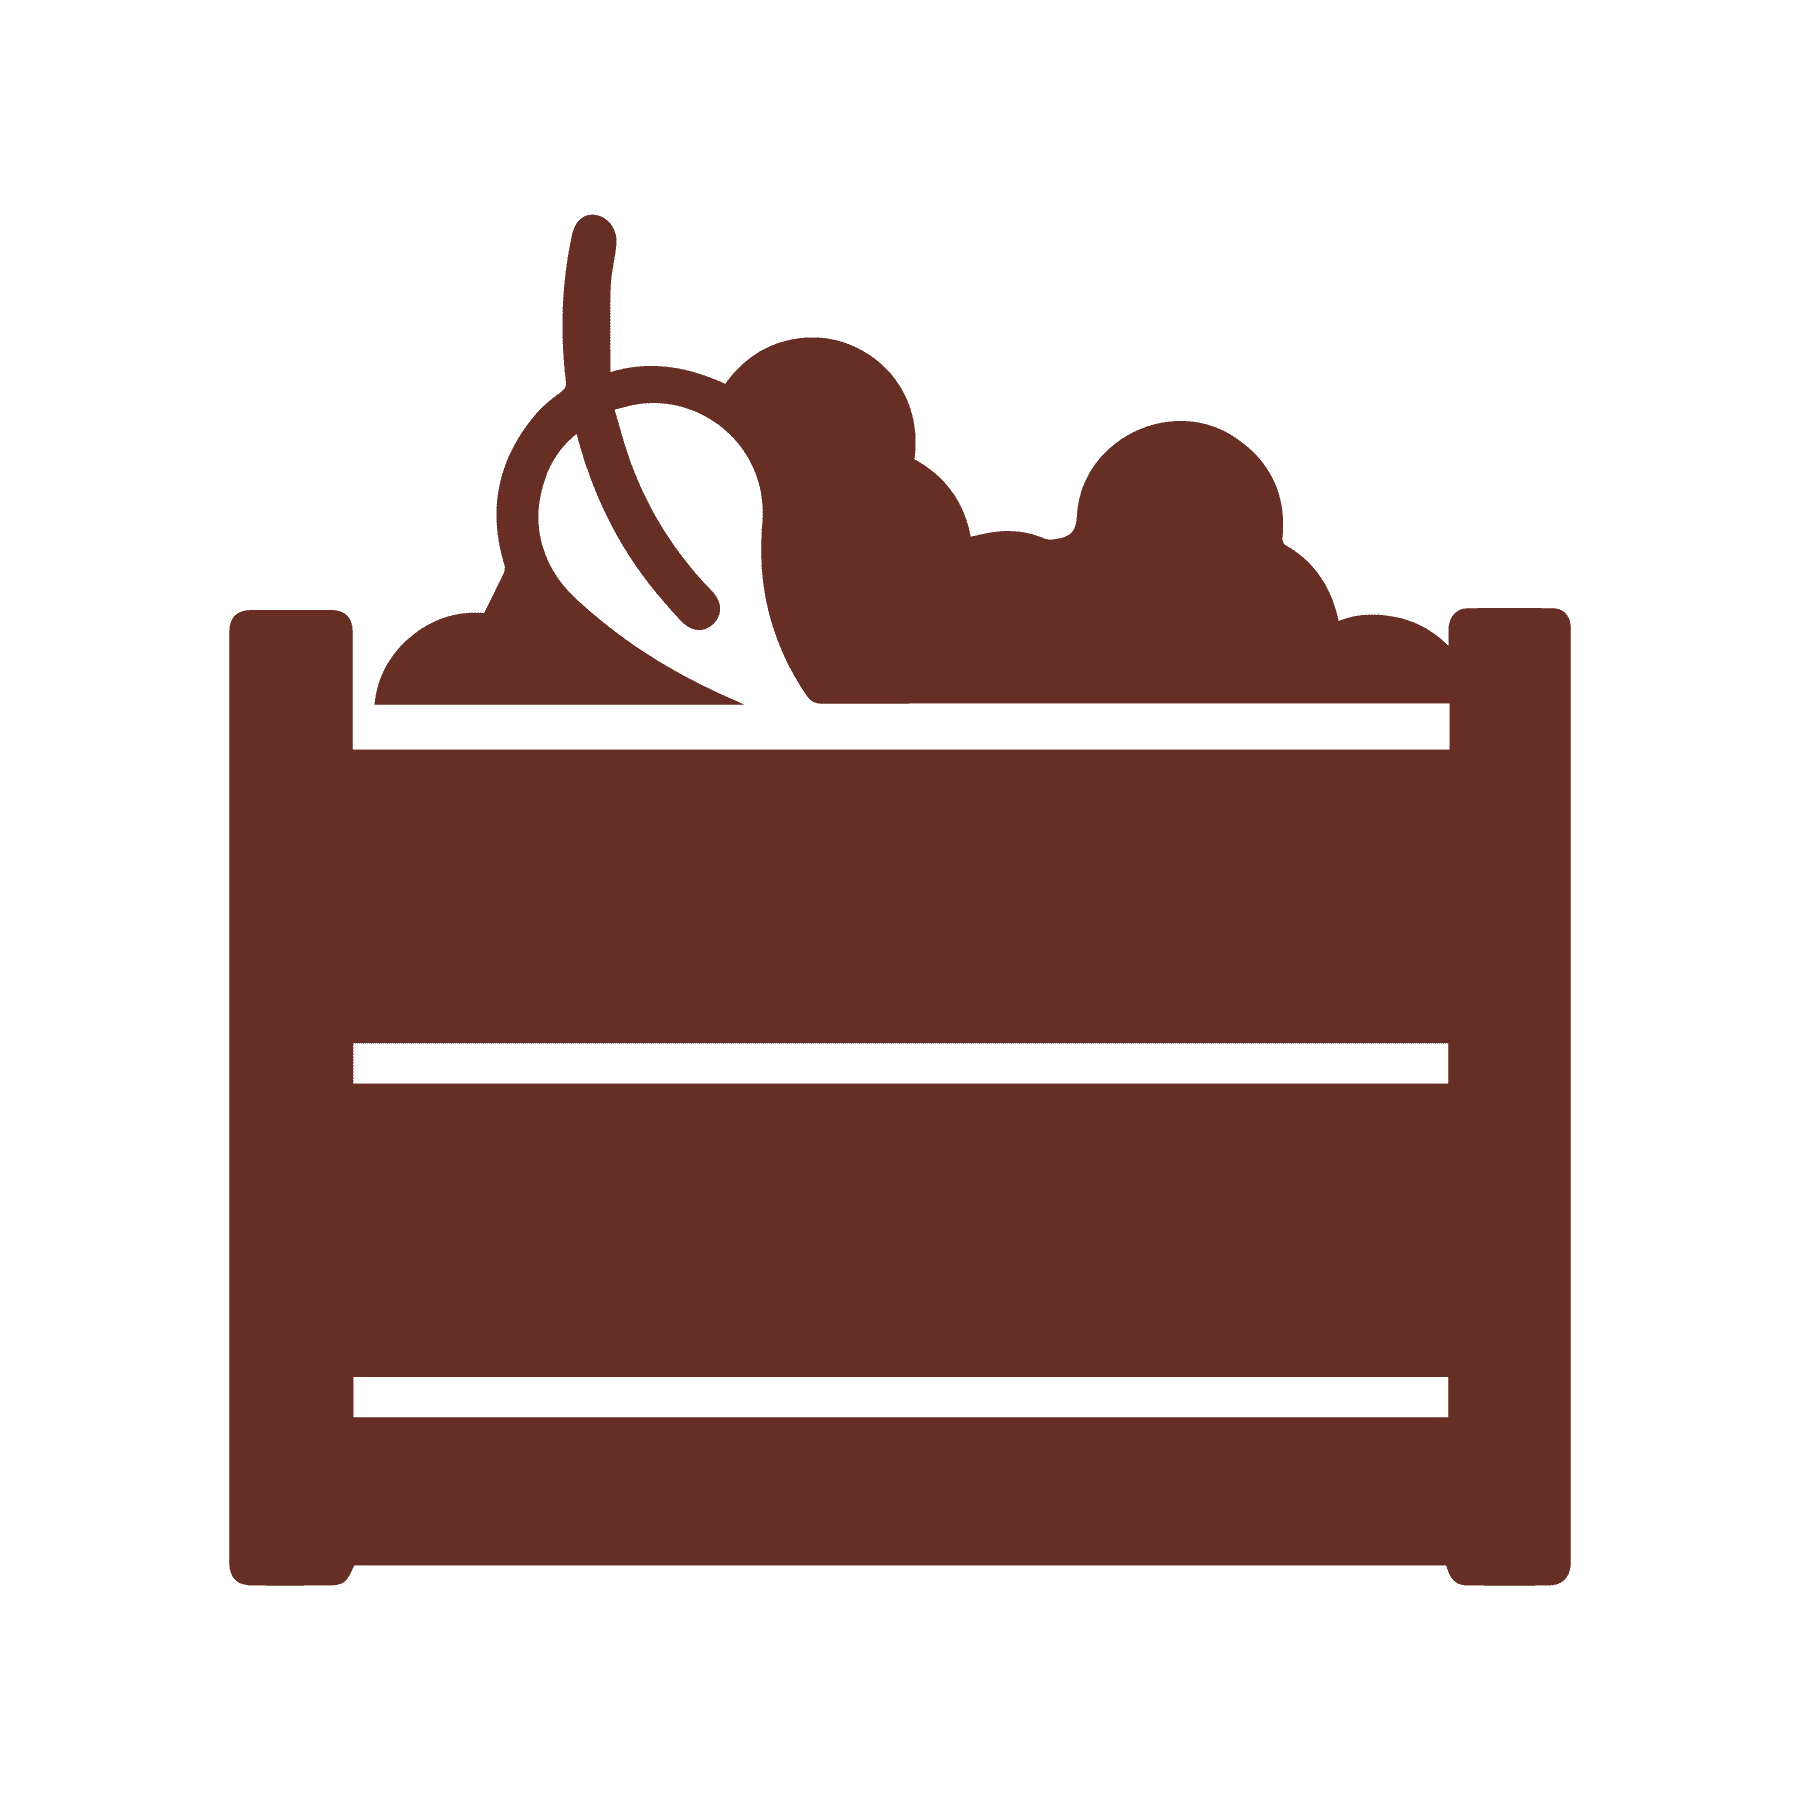 Compost pile icon